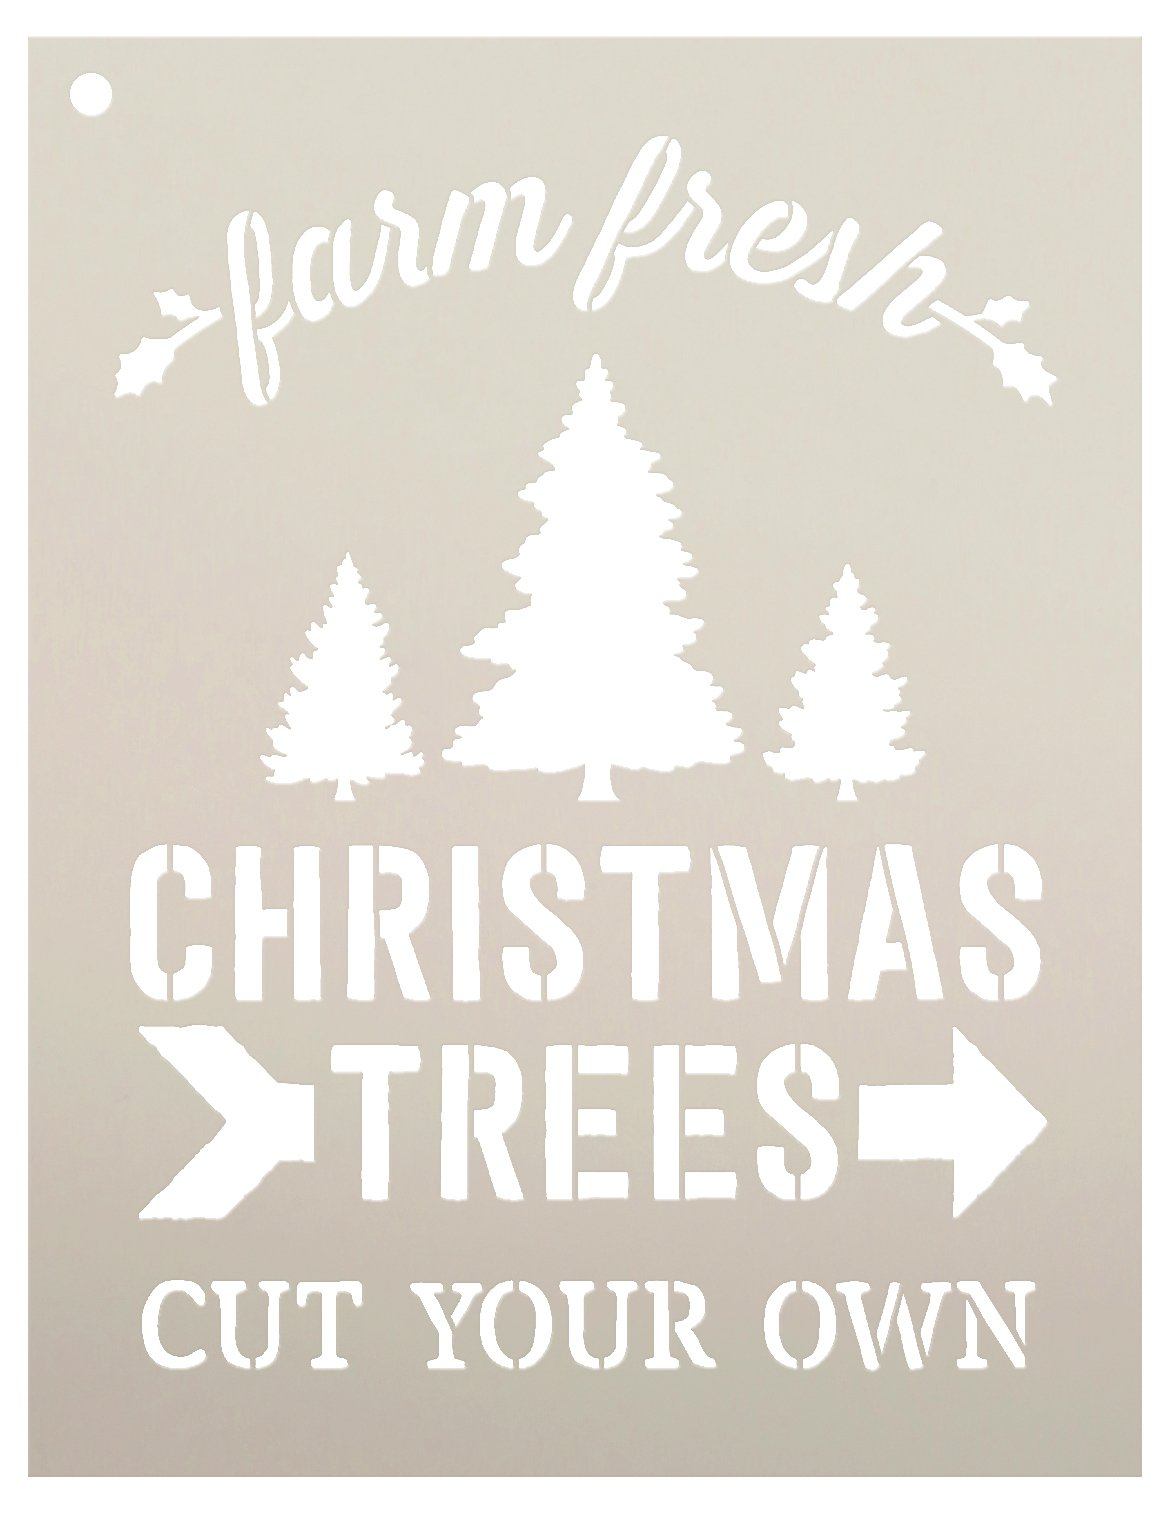 Farm Fresh Christmas Trees Stencil by StudioR12 | Cut Your Own | Arrow | DIY Winter Holiday Home Decor | Craft & Paint Wood Signs | Reusable Mylar Template | Choose Size (9'' x 11'') by STUDIOR12 STUDIO R12